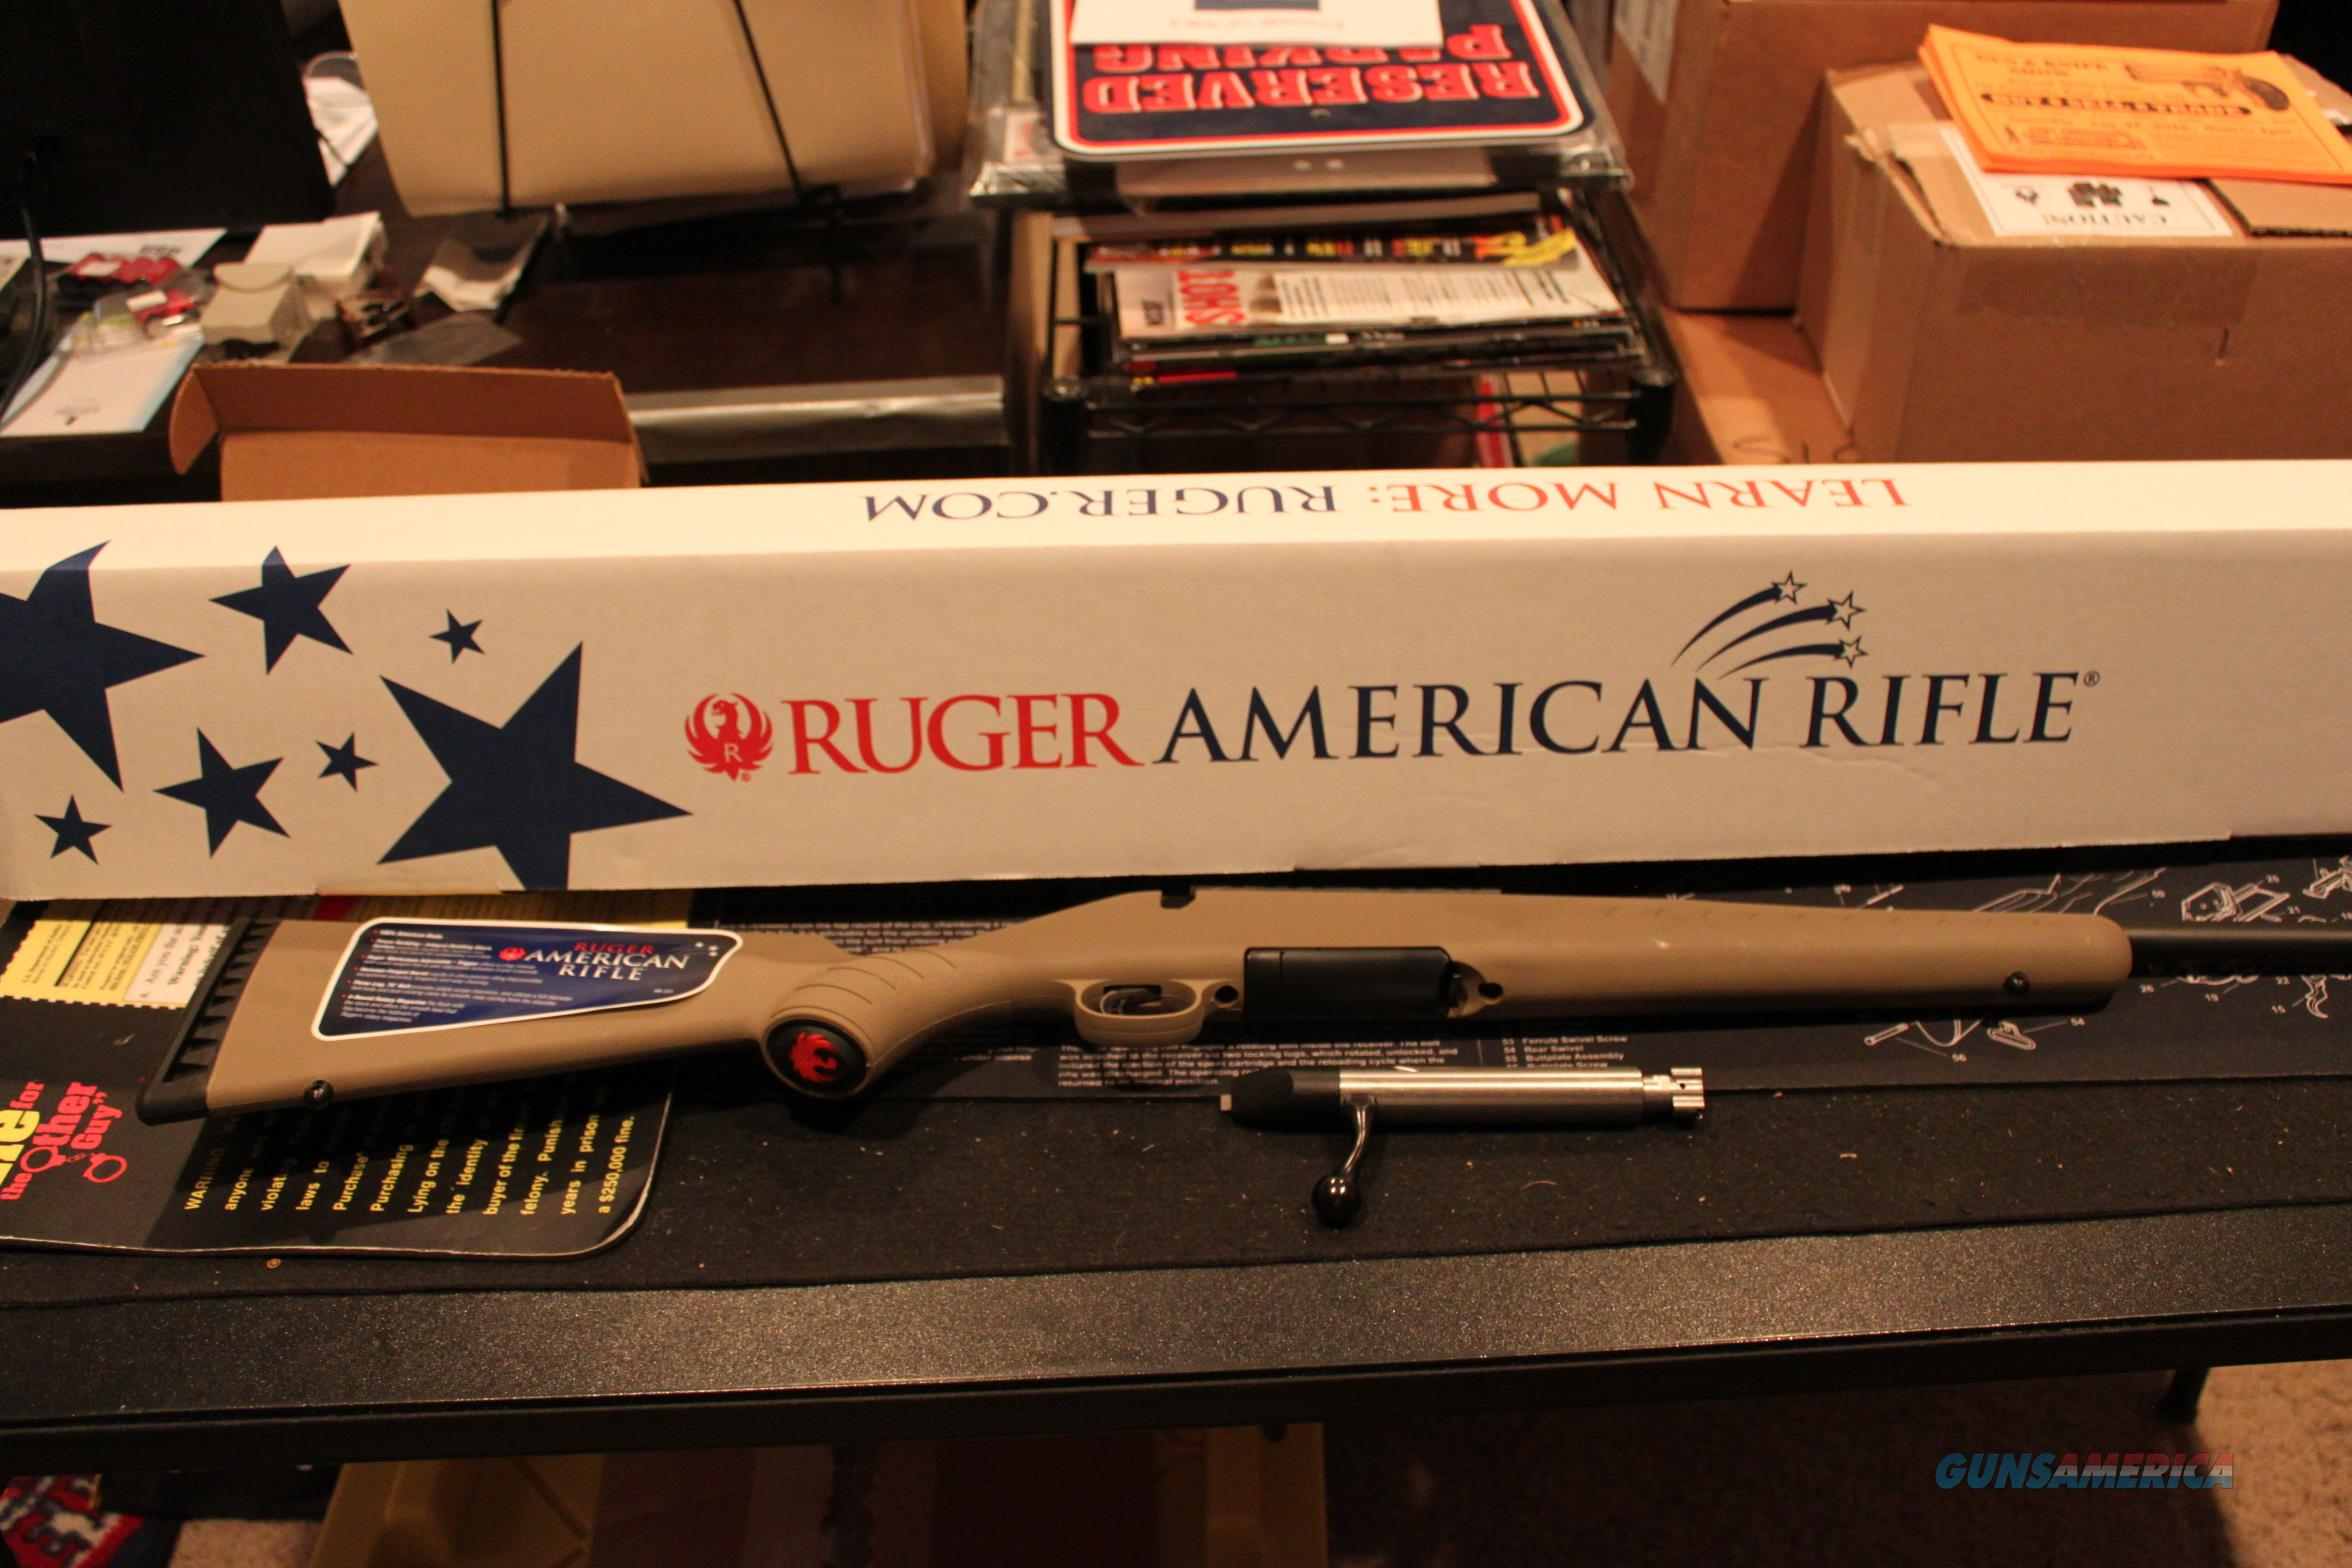 Ruger, American Rifle Ranch, Bolt-Action, 300 BLK, 16 1